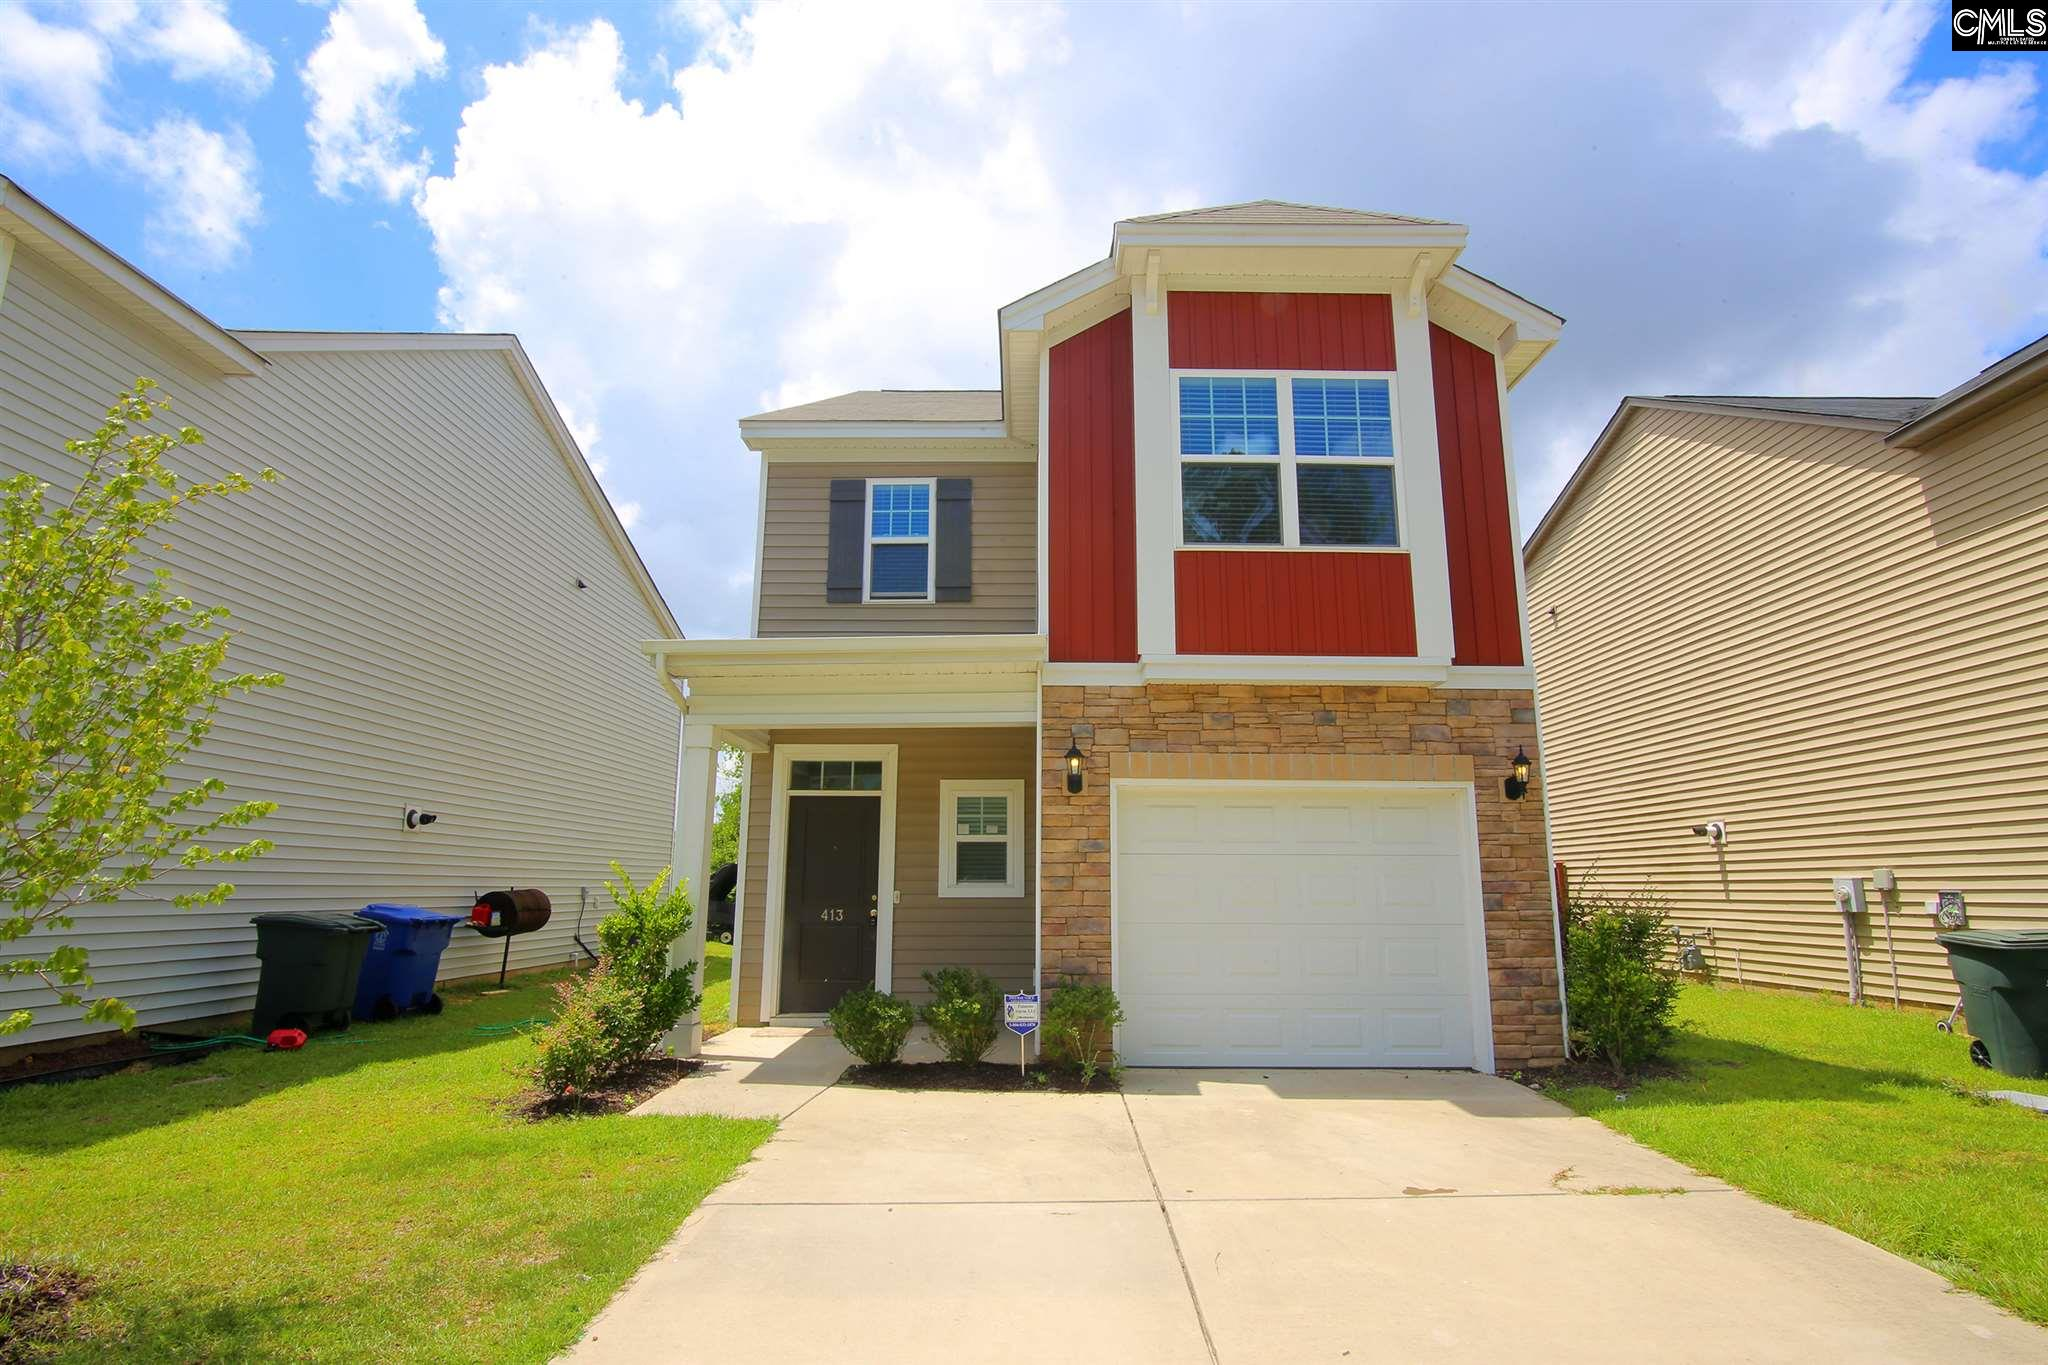 413 Eastfair Columbia, SC 29209